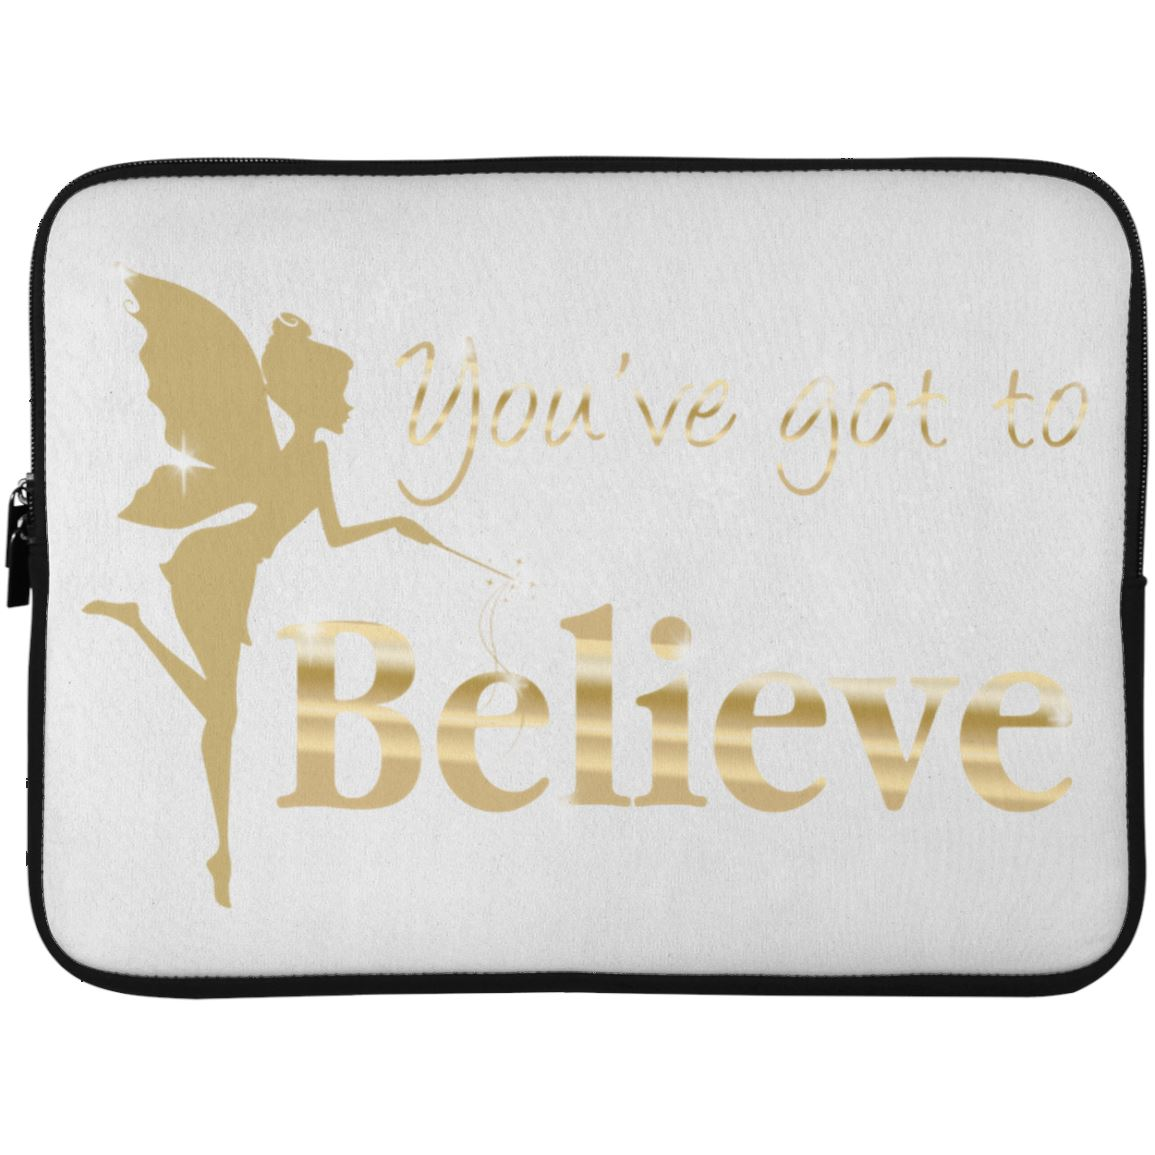 You've Got To Believe Fairy Laptop Sleeve Apparel Laptop Sleeve - 15 Inch White One Size